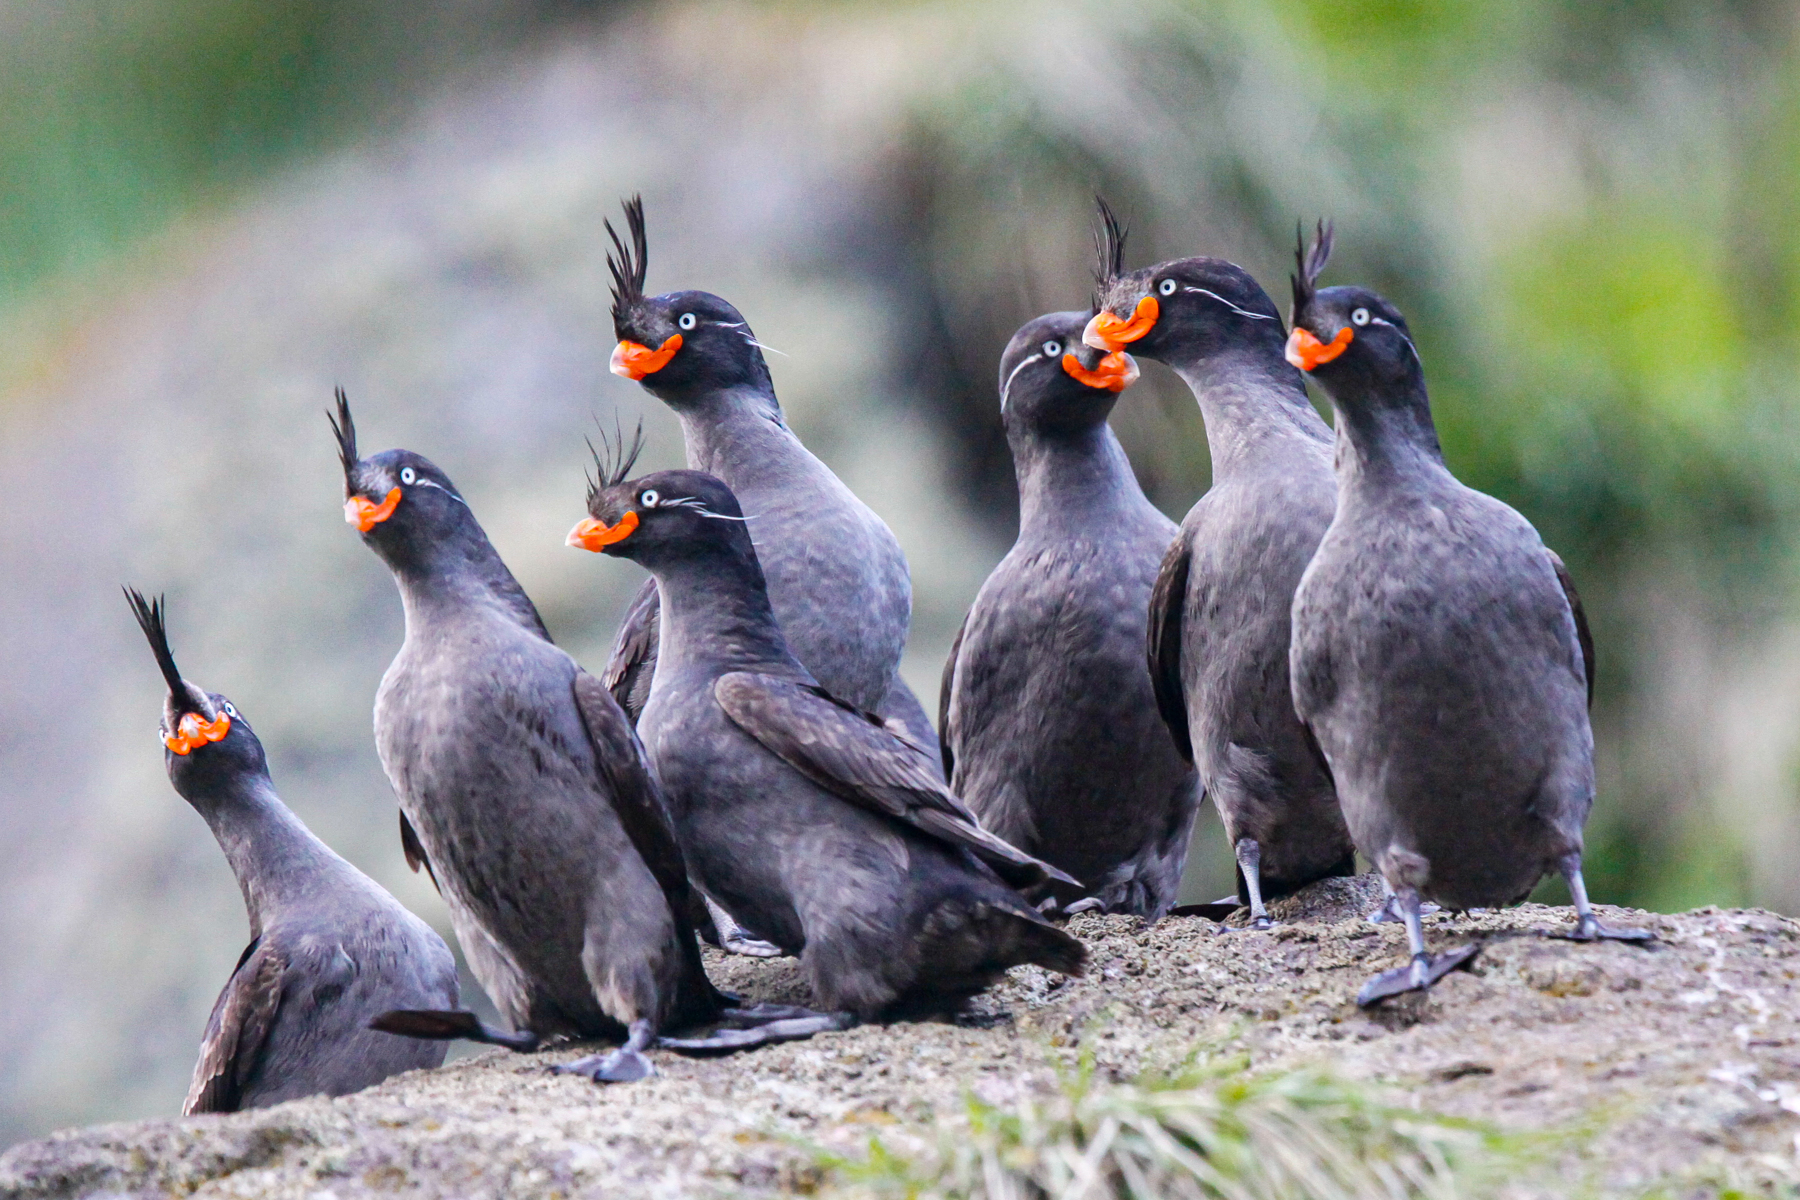 Crested Auklets on our Kuril Islands & Kamchatka birding tour (image by Mark Beaman)